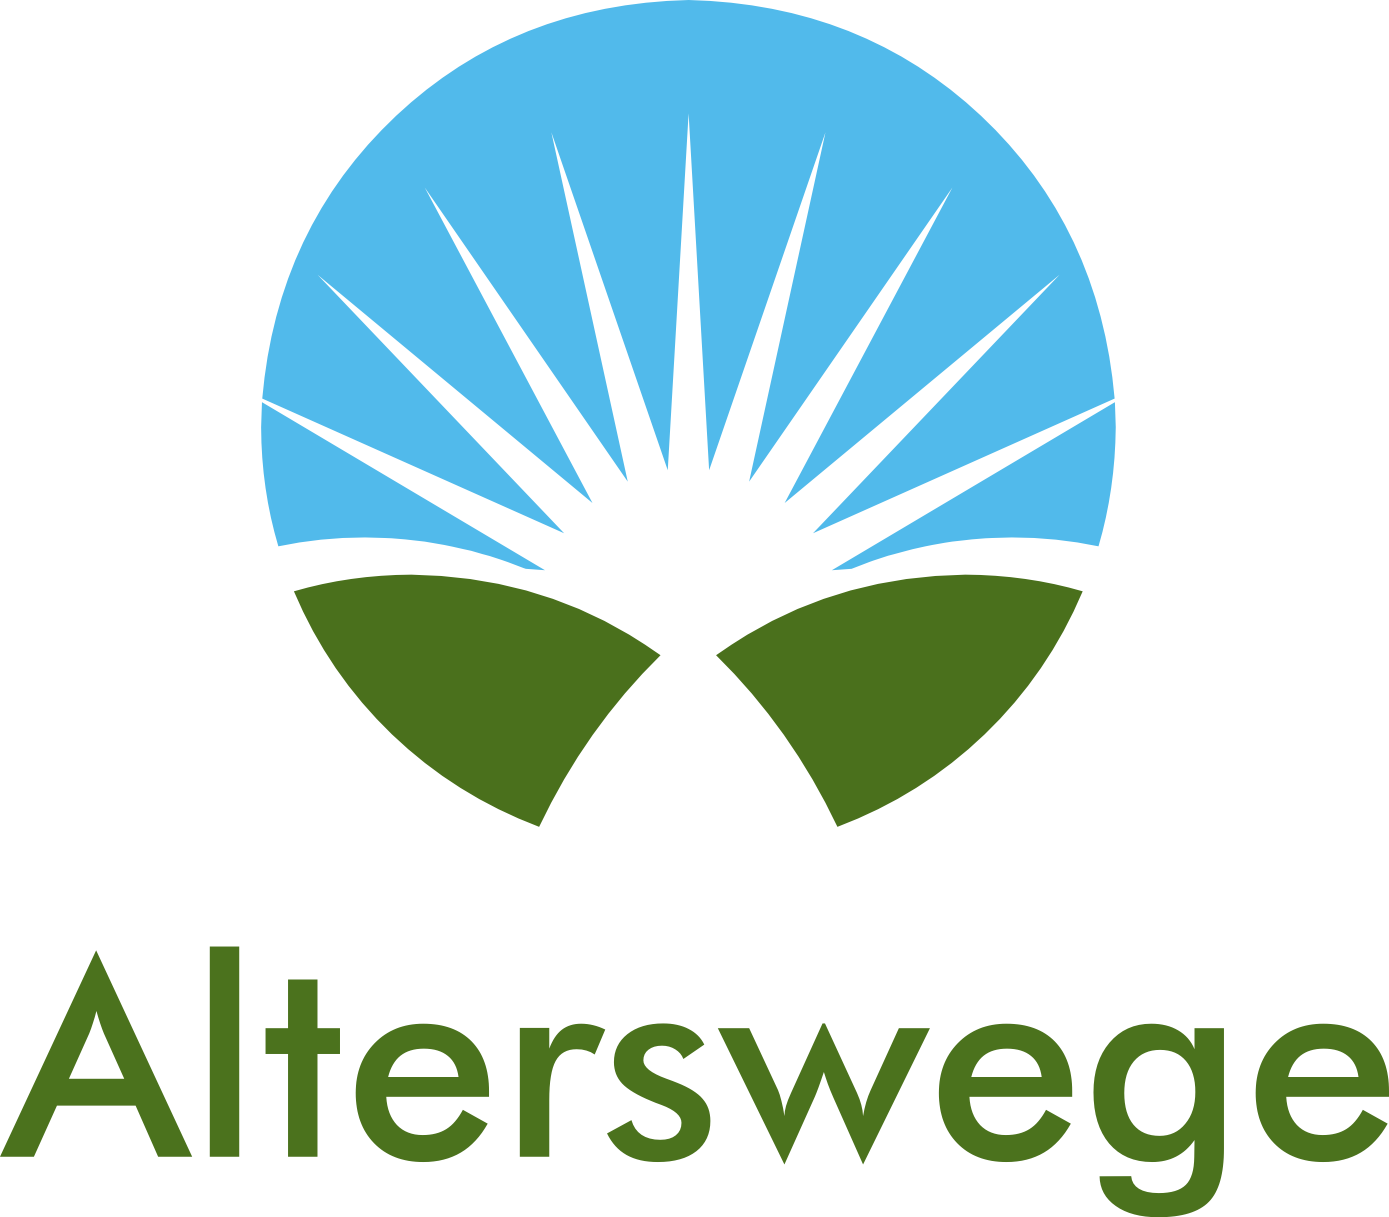 Alterswege